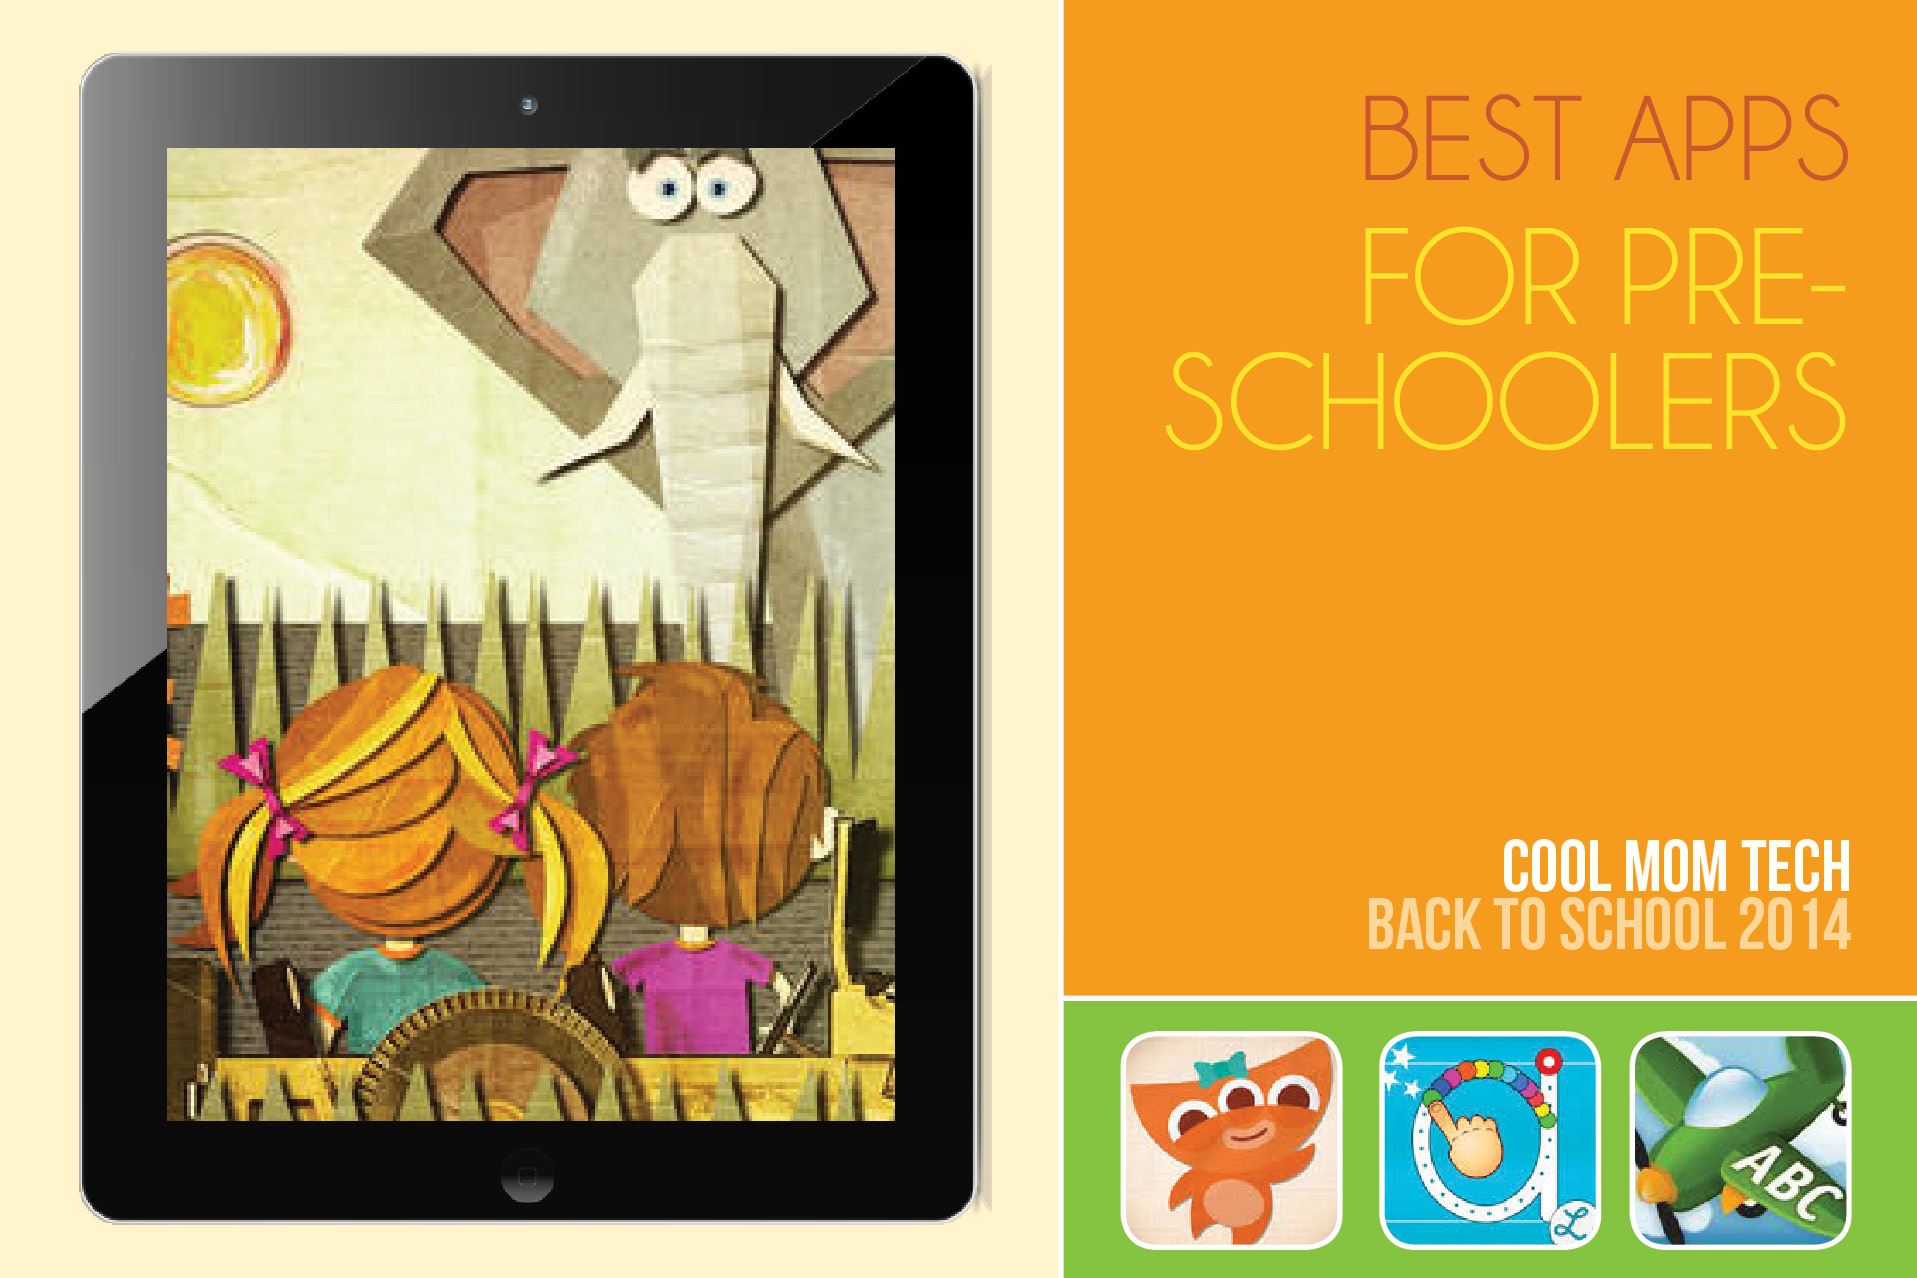 12 of the best educational apps for preschoolers: Back to School Tech Guide 2014